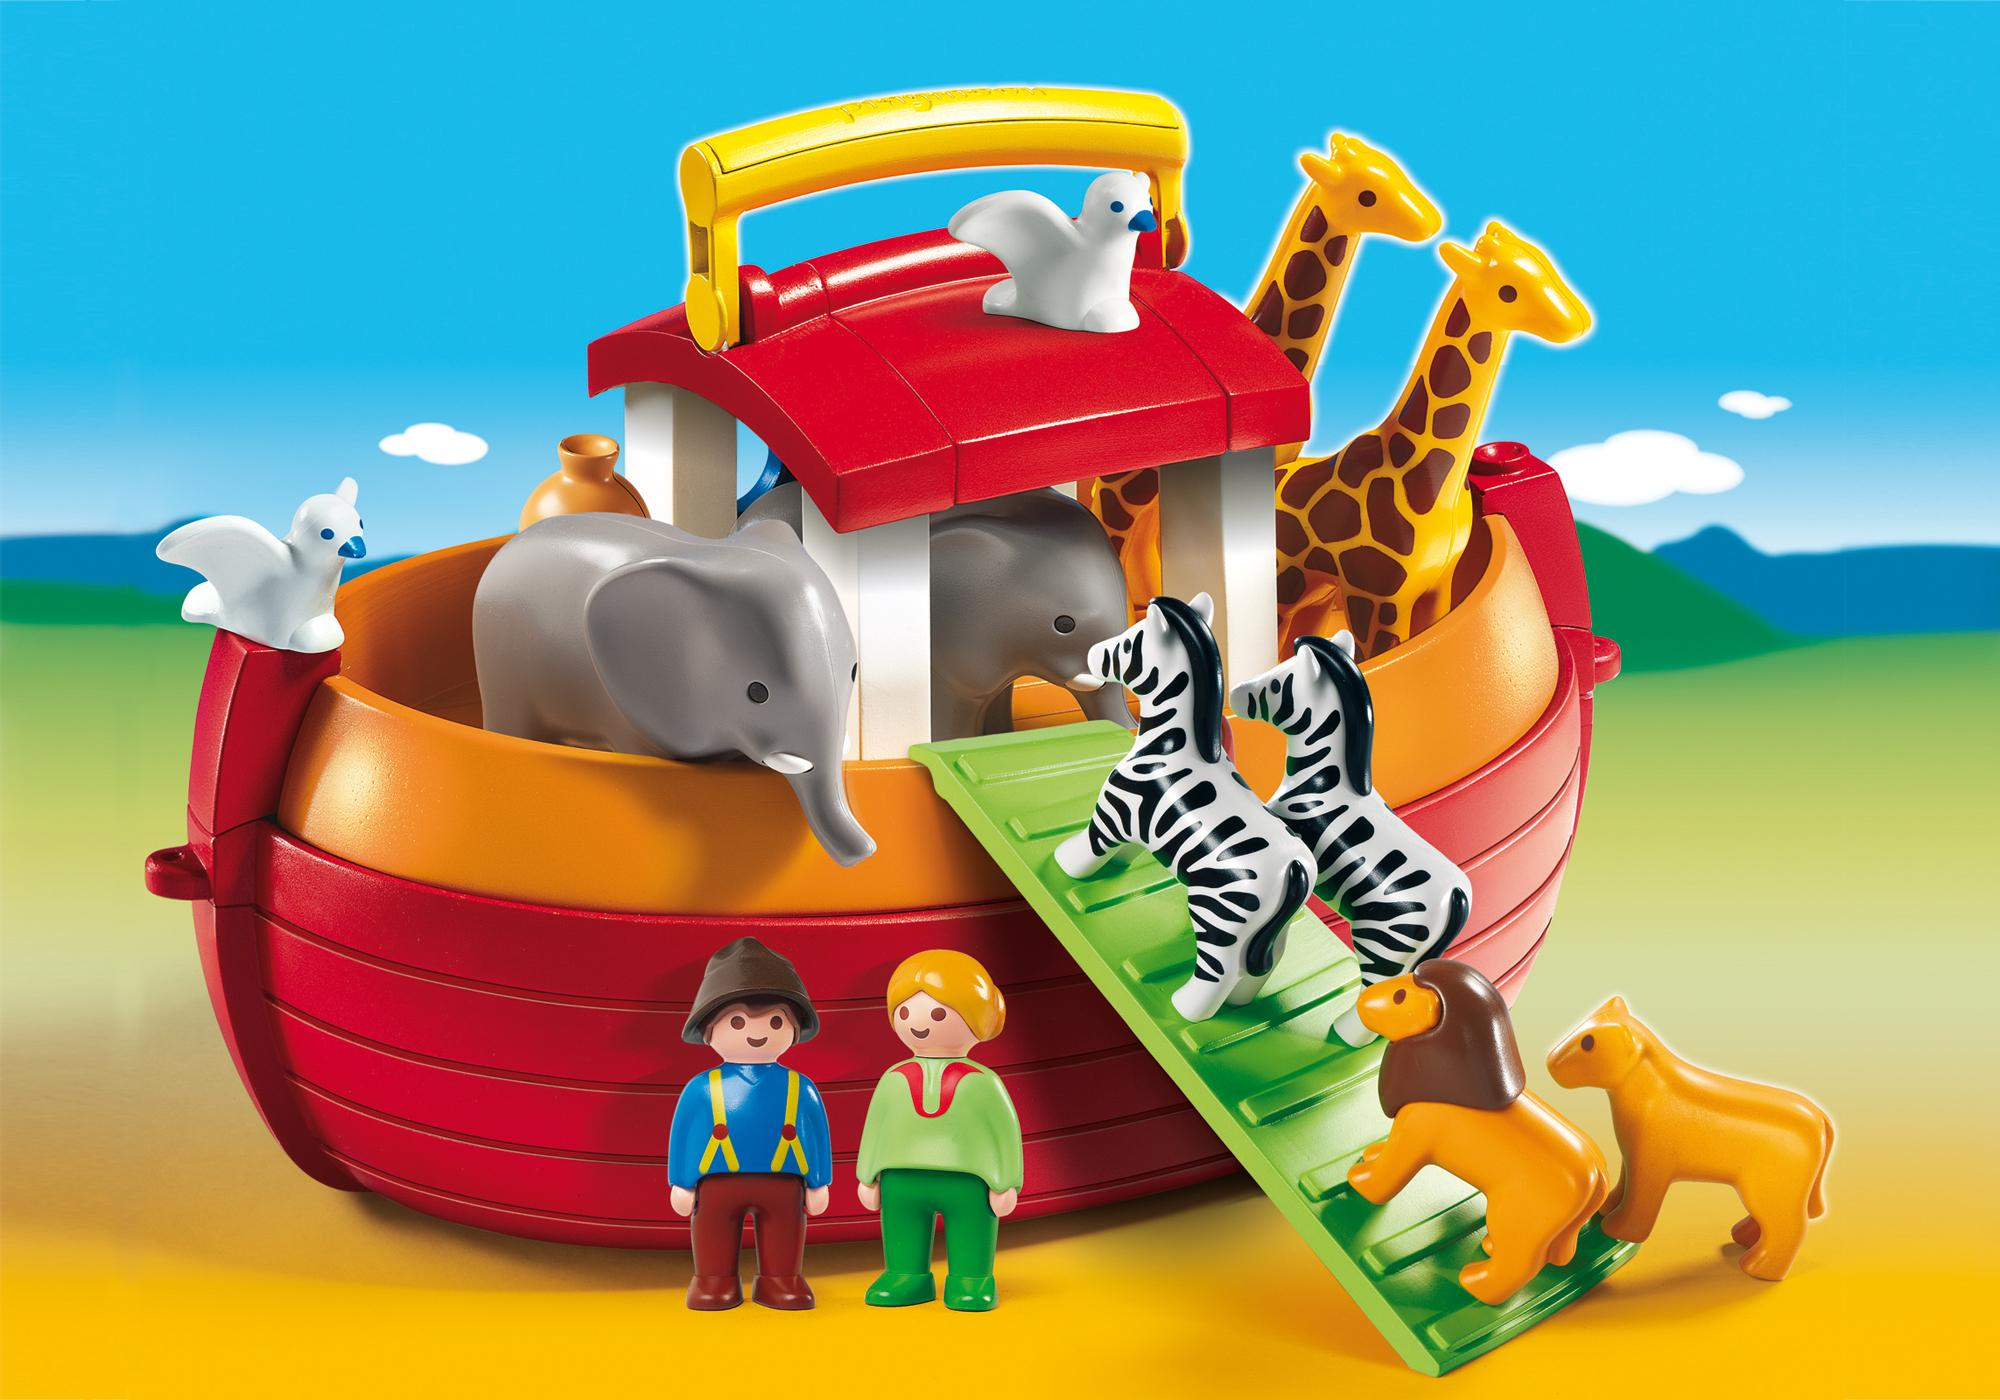 http://media.playmobil.com/i/playmobil/6765-A_product_detail/Meine Mitnehm-Arche Noah